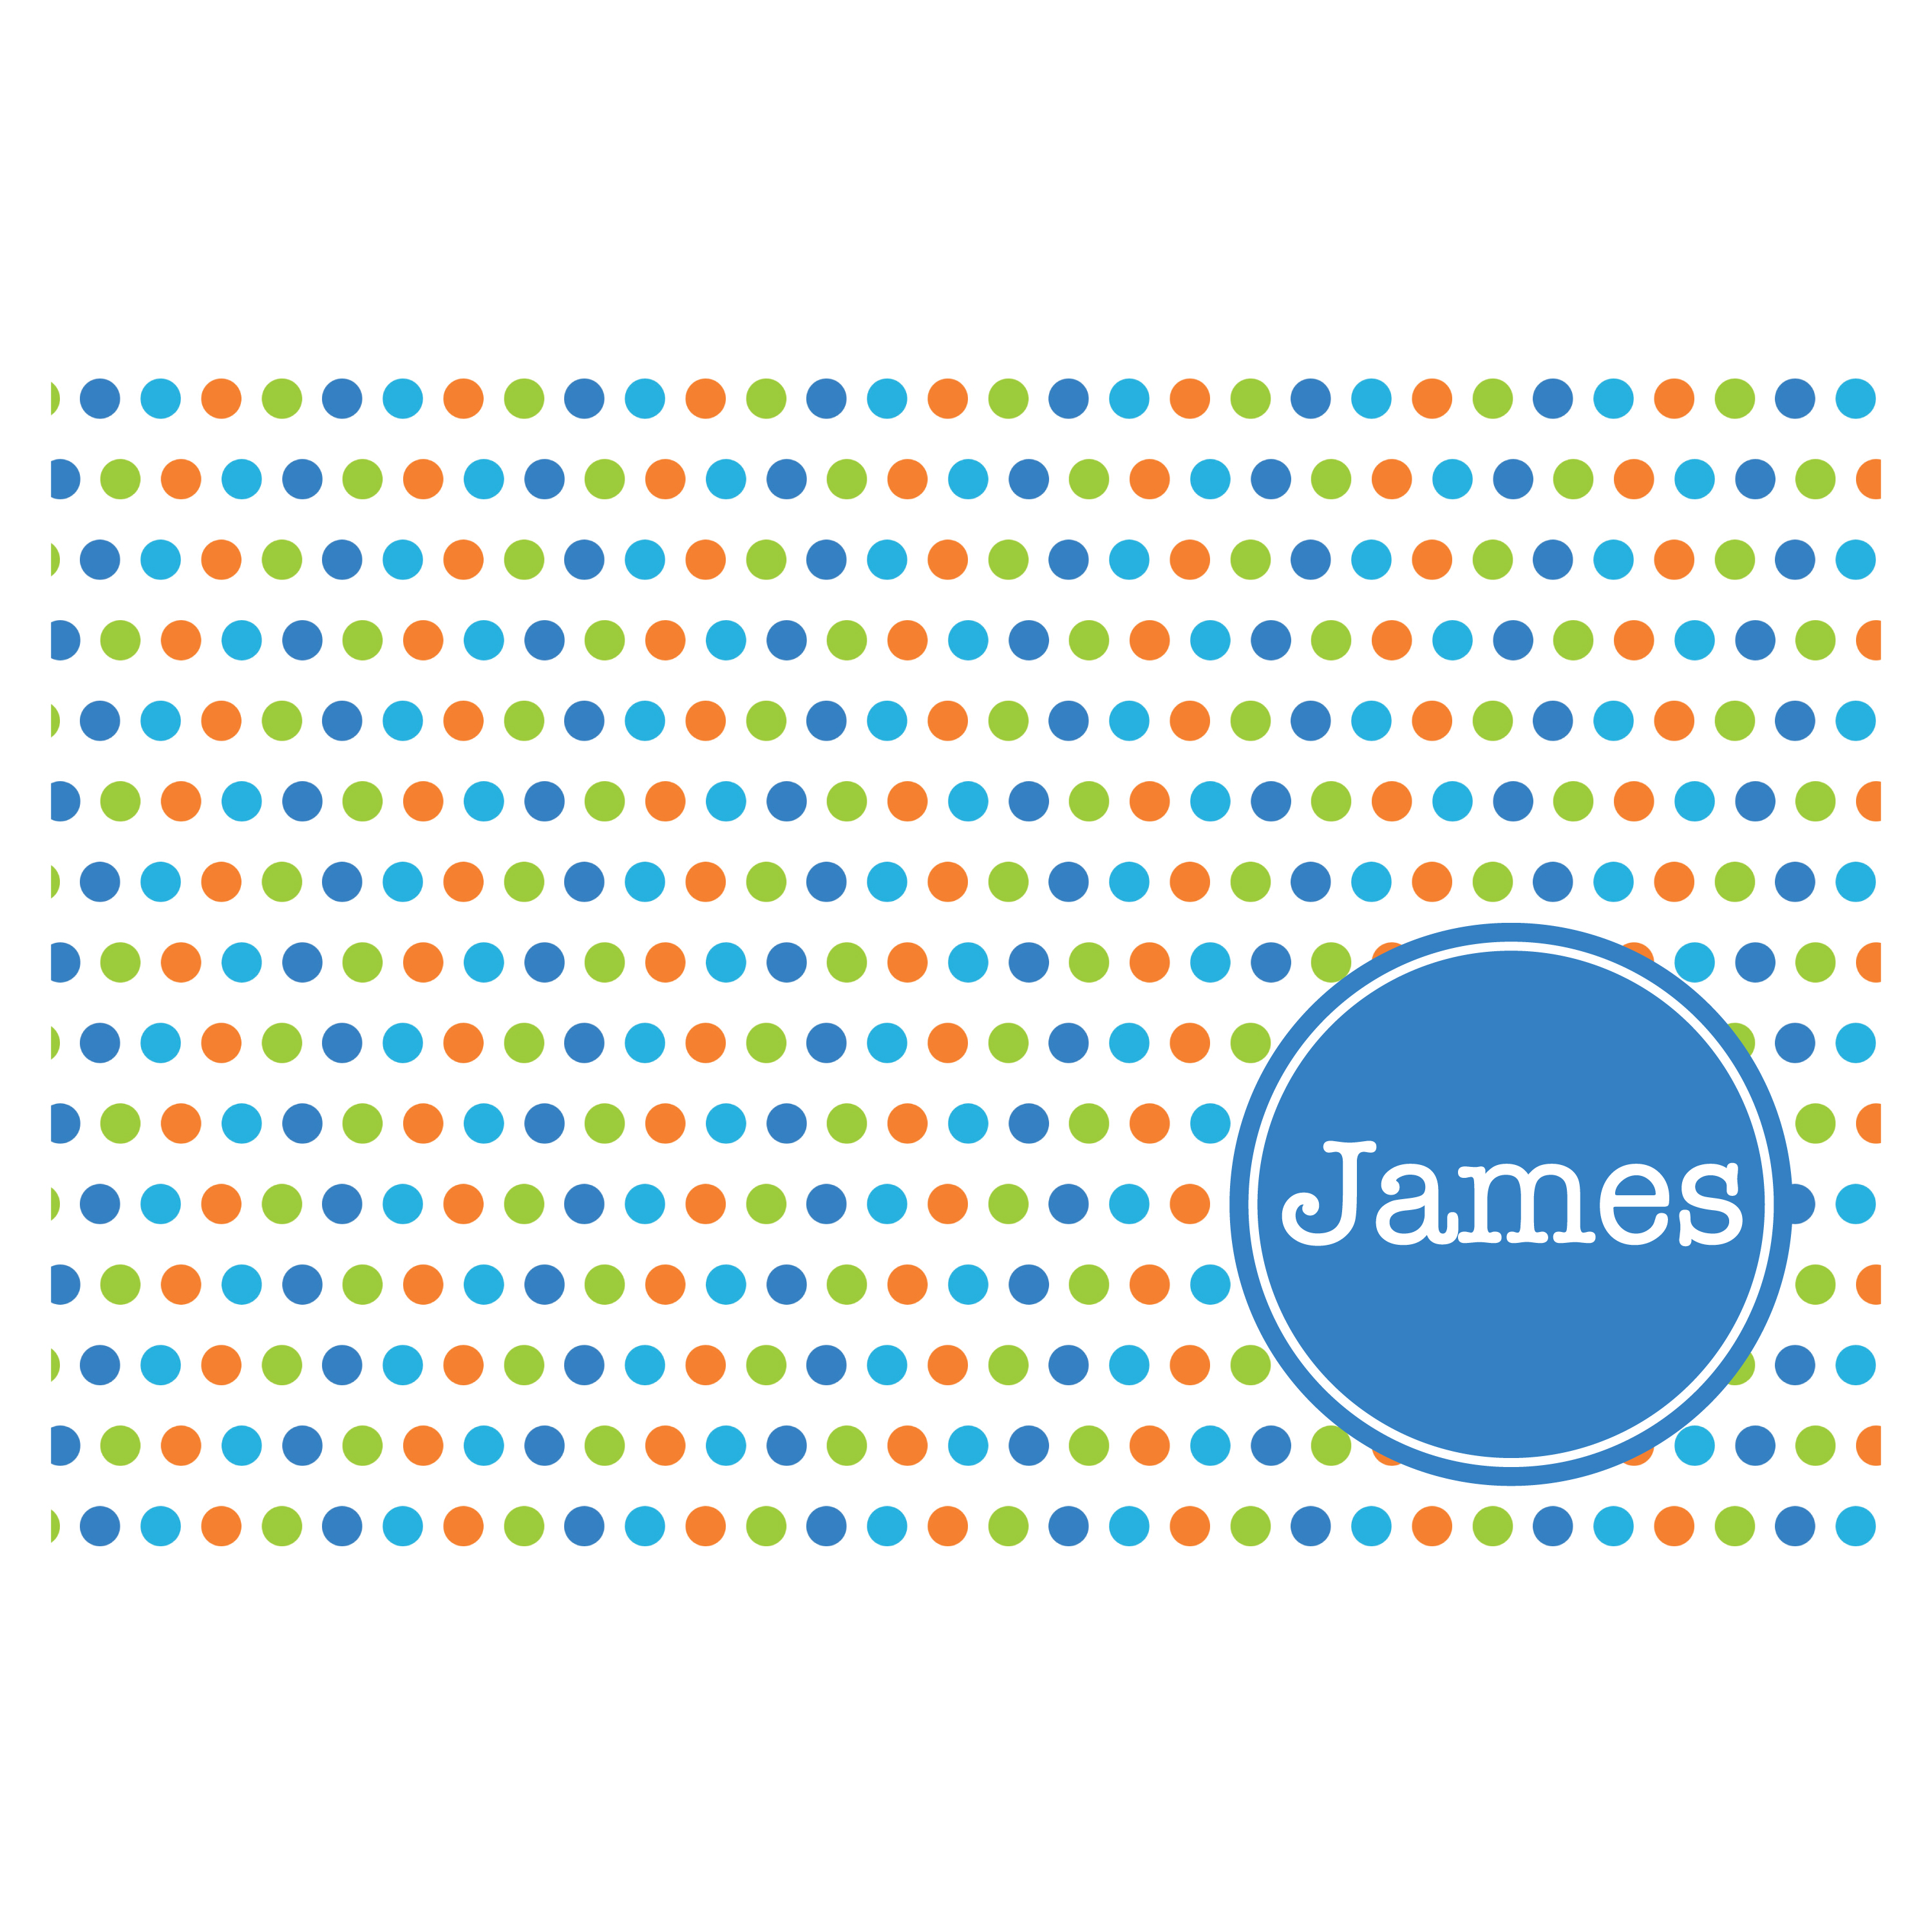 bright multicolored dots with blue personalized placemats ooh la